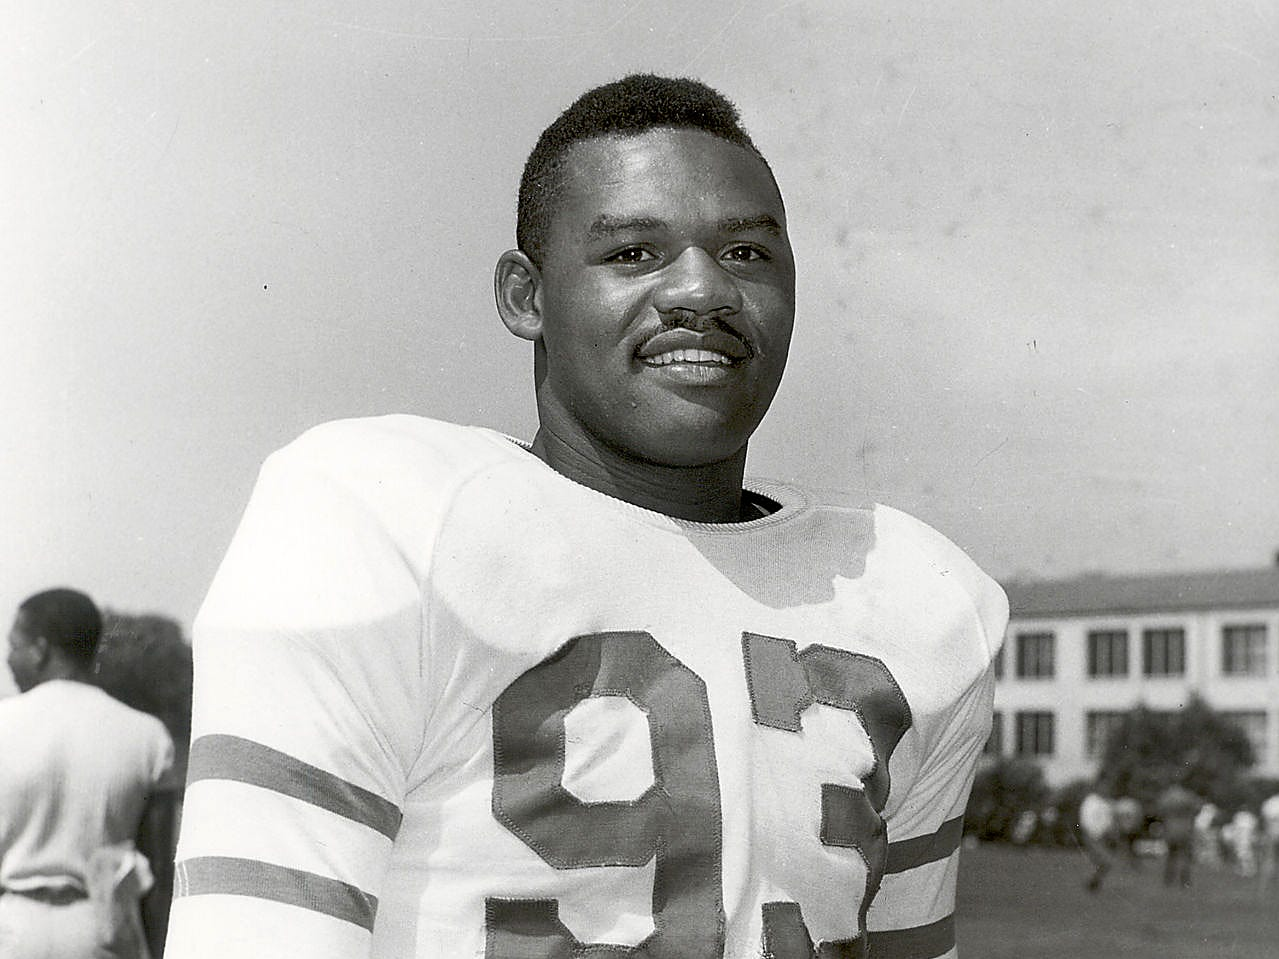 George Taliaferro, 91, former IU football star, was the first African-American drafted by an NFL team. Here is a submitted photo of him when he played for the New York Yanks.